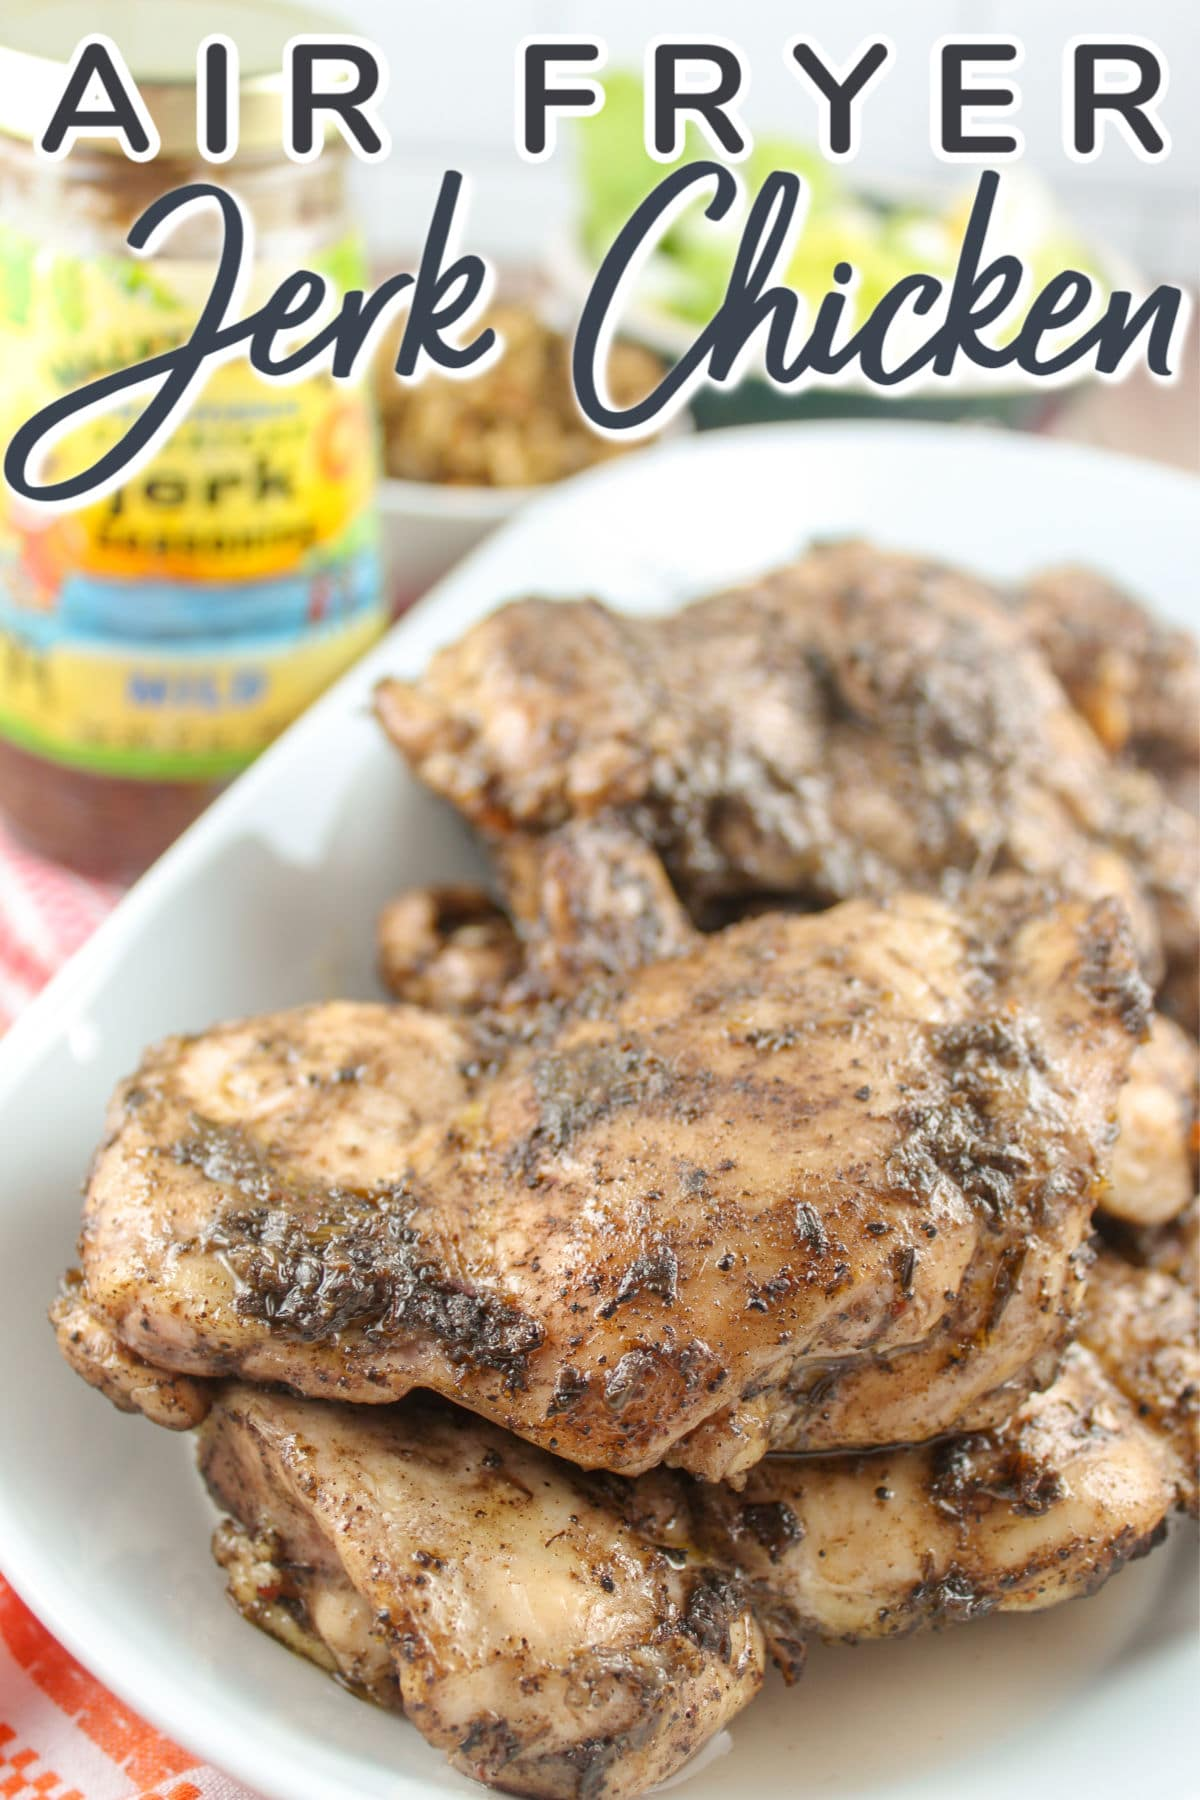 After visiting the Caribbean, I fell in love with Jerk Chicken! This spicy, juicy burst of flavor was sooo good - I had to make it myself!